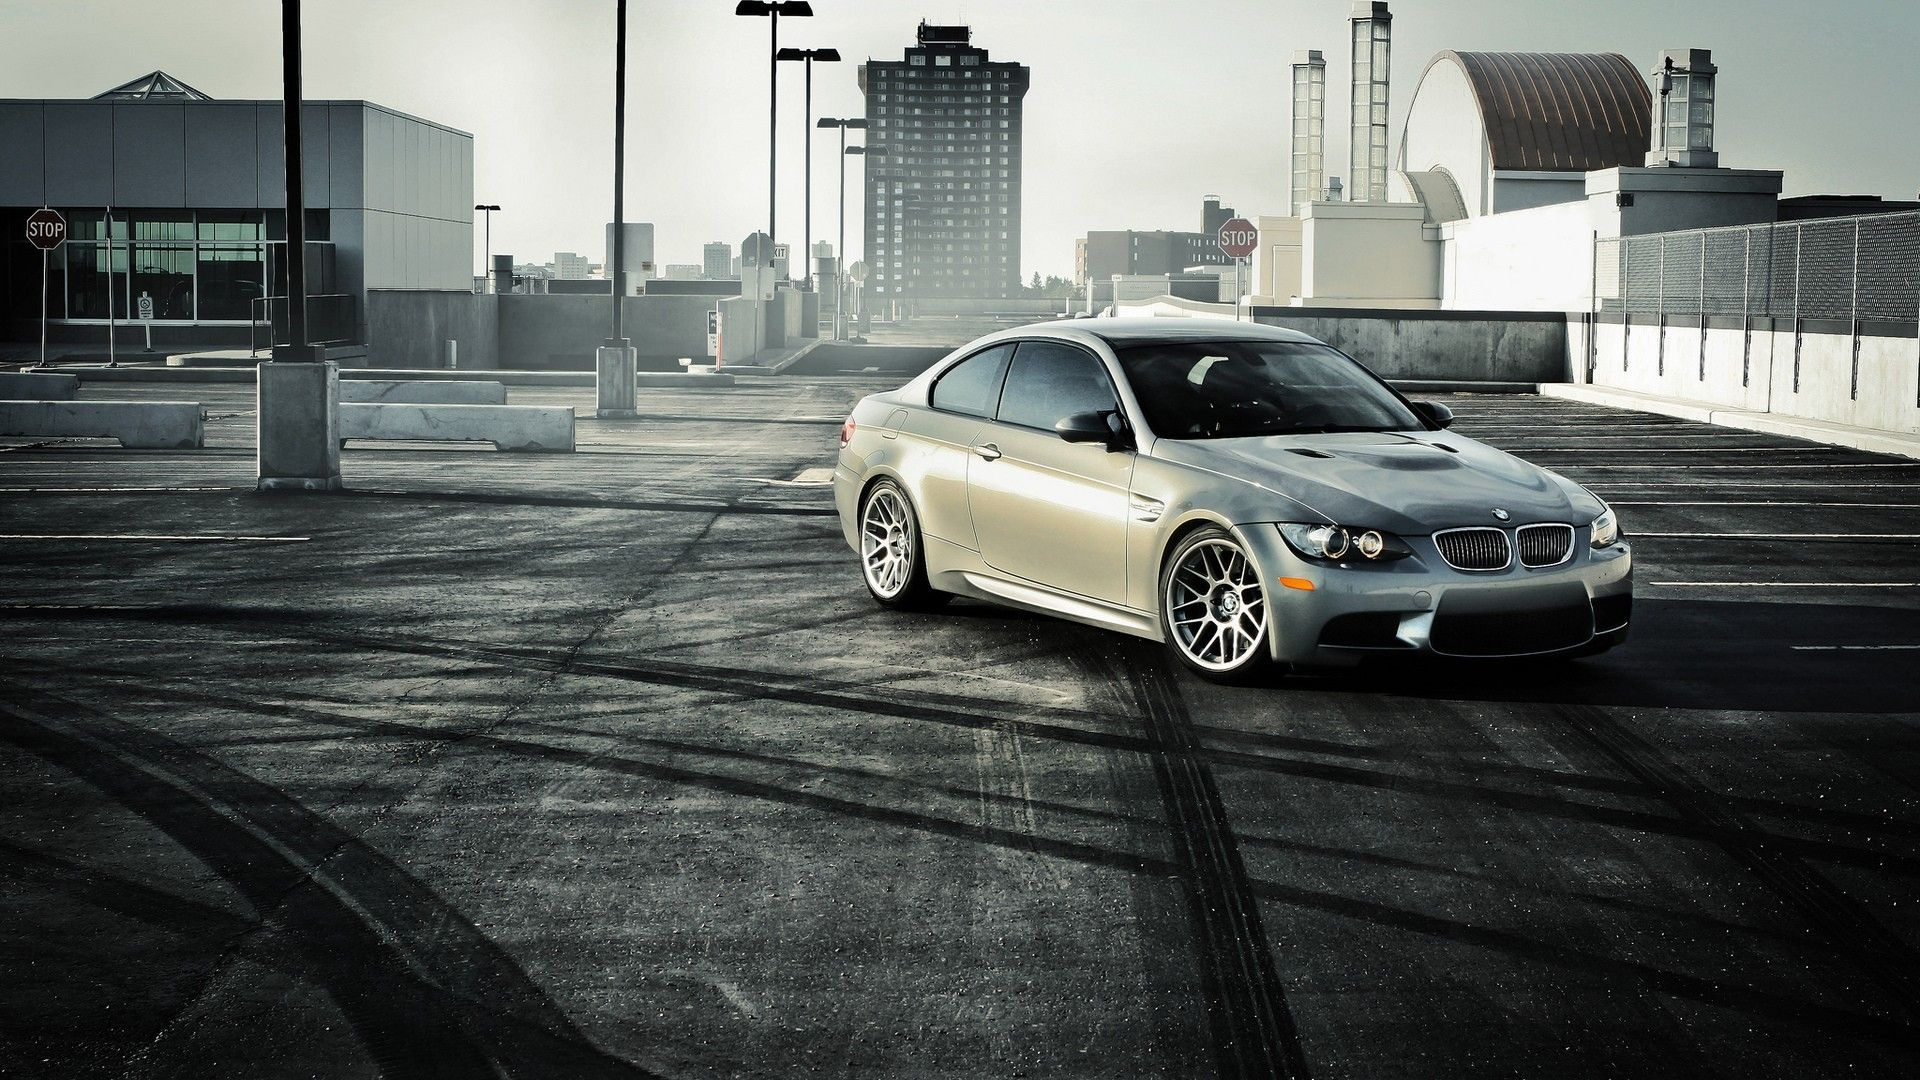 bmw-m3-wallpaper-hd